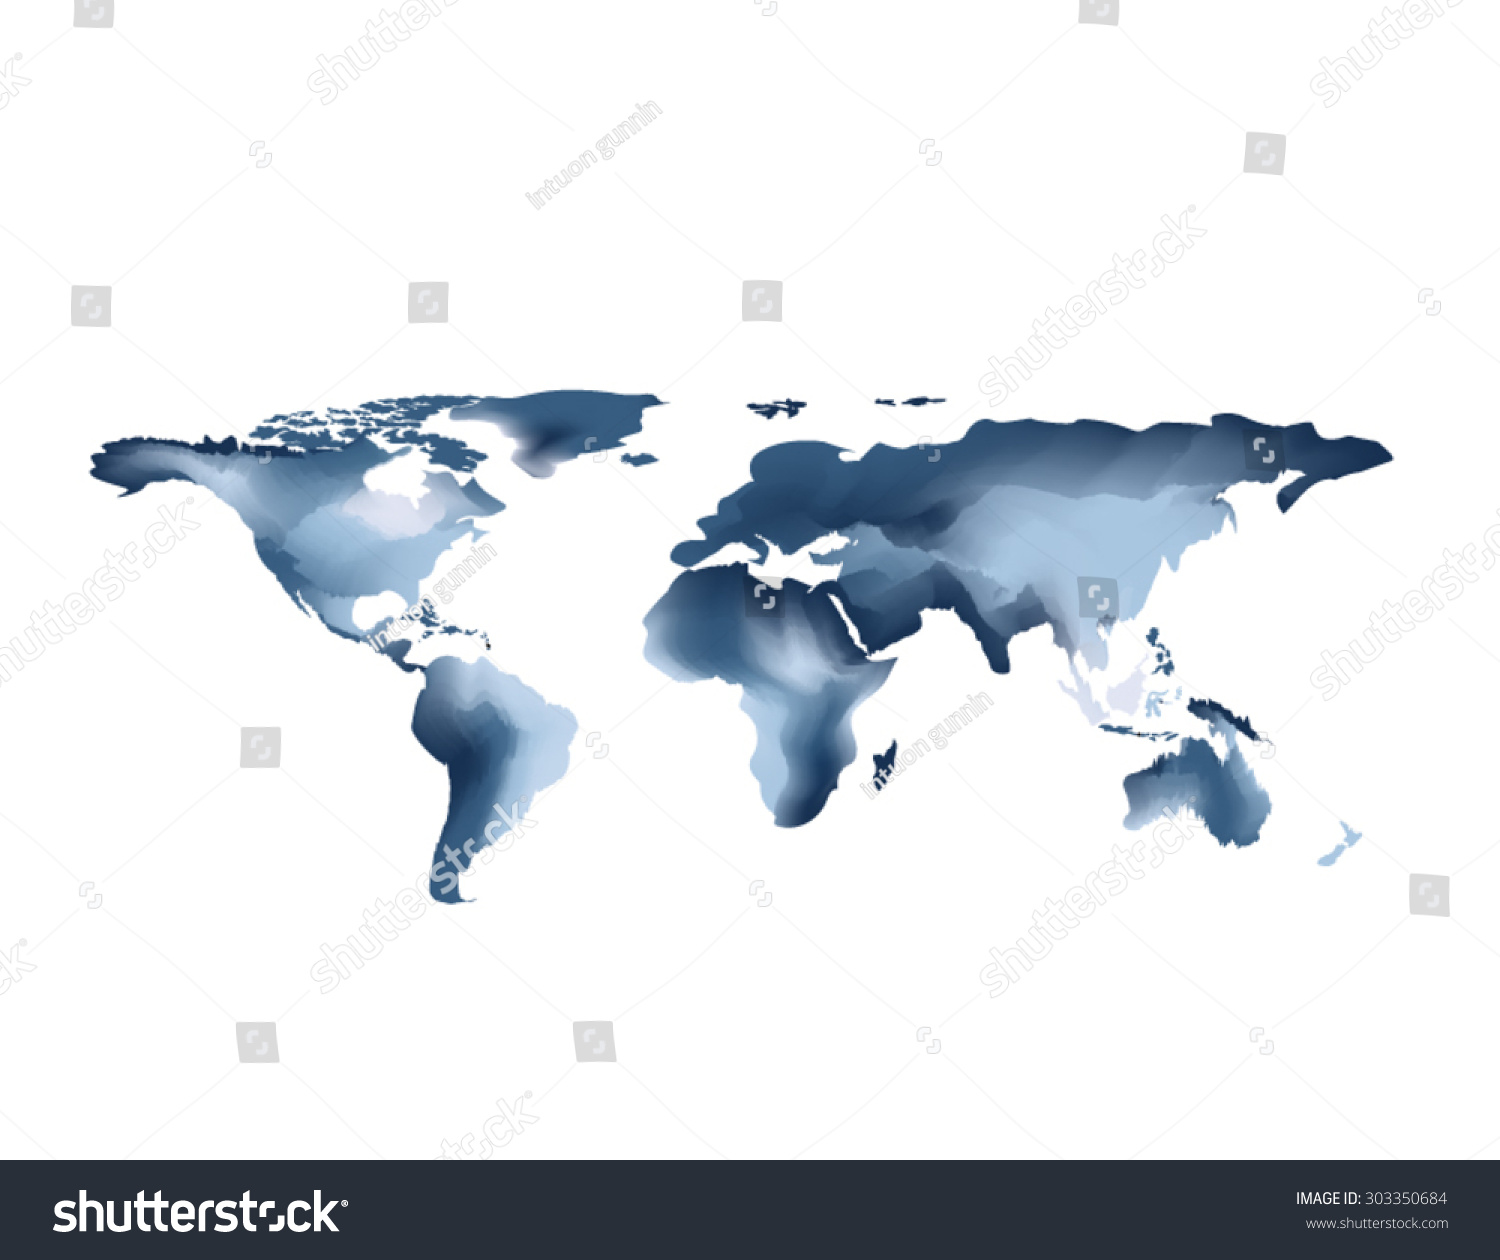 World map abstract background water color stock vector 303350684 world map abstract background water color stock vector 303350684 shutterstock gumiabroncs Gallery